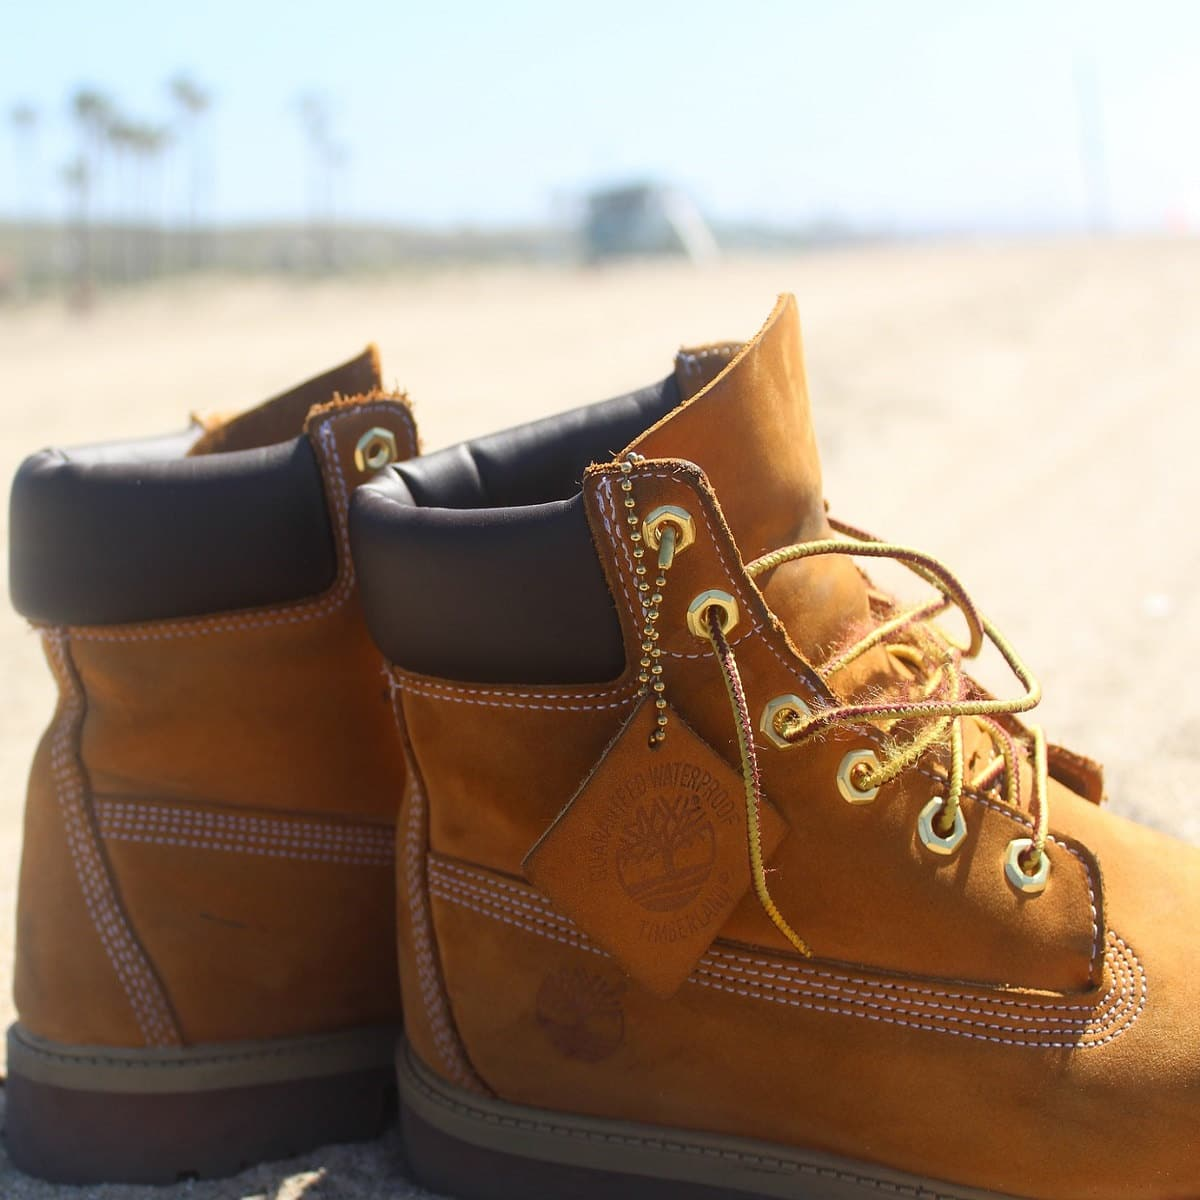 fuga constructor cigarro  Are Timberland Boots Really Waterproof?